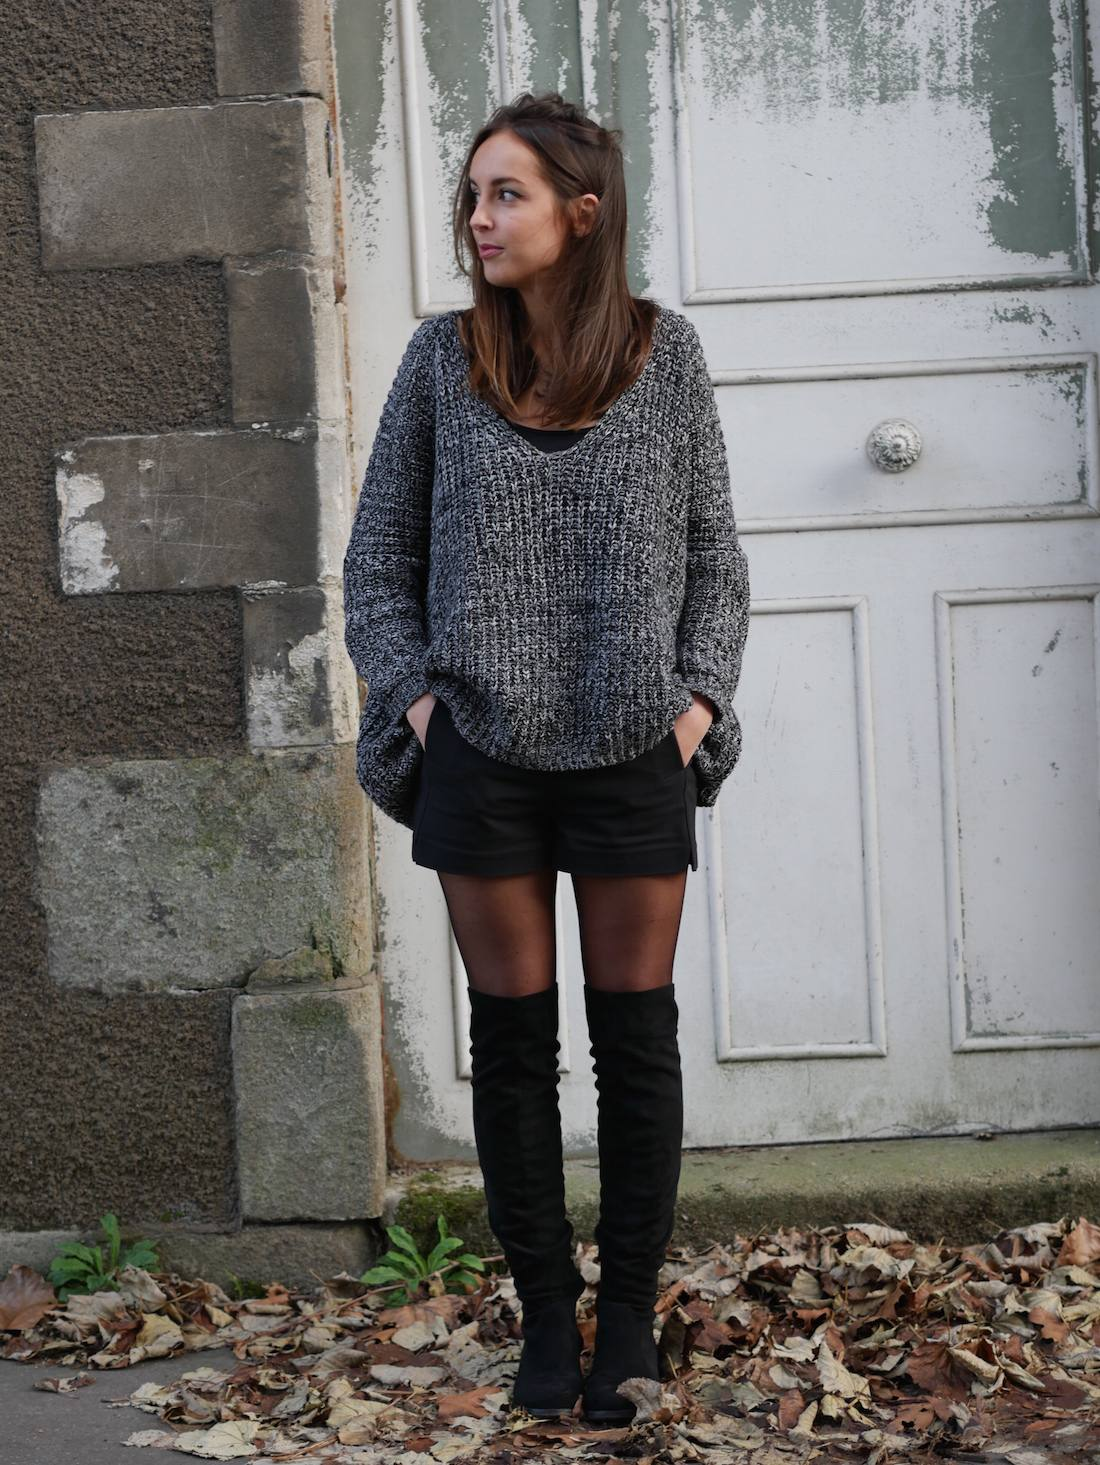 Blog mode - cuissardes modress 6